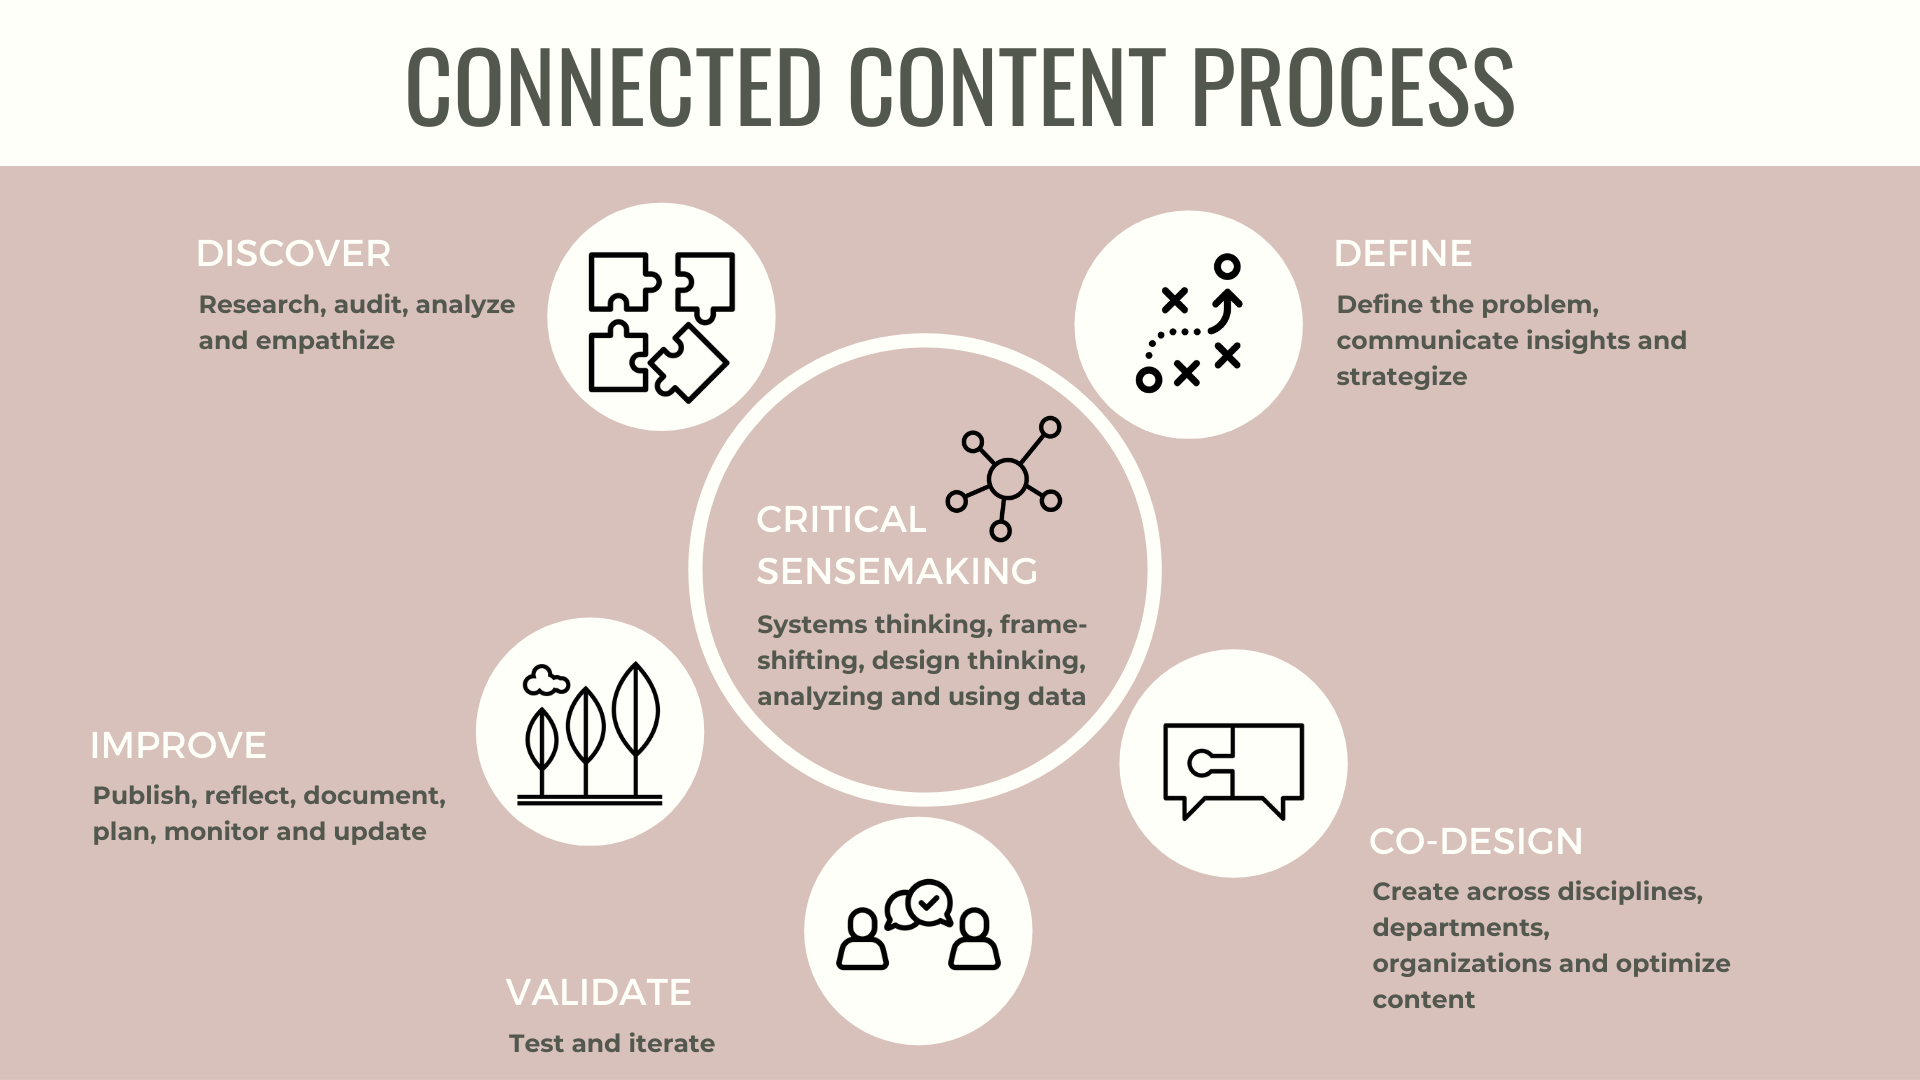 A graphic representing the connected content process.